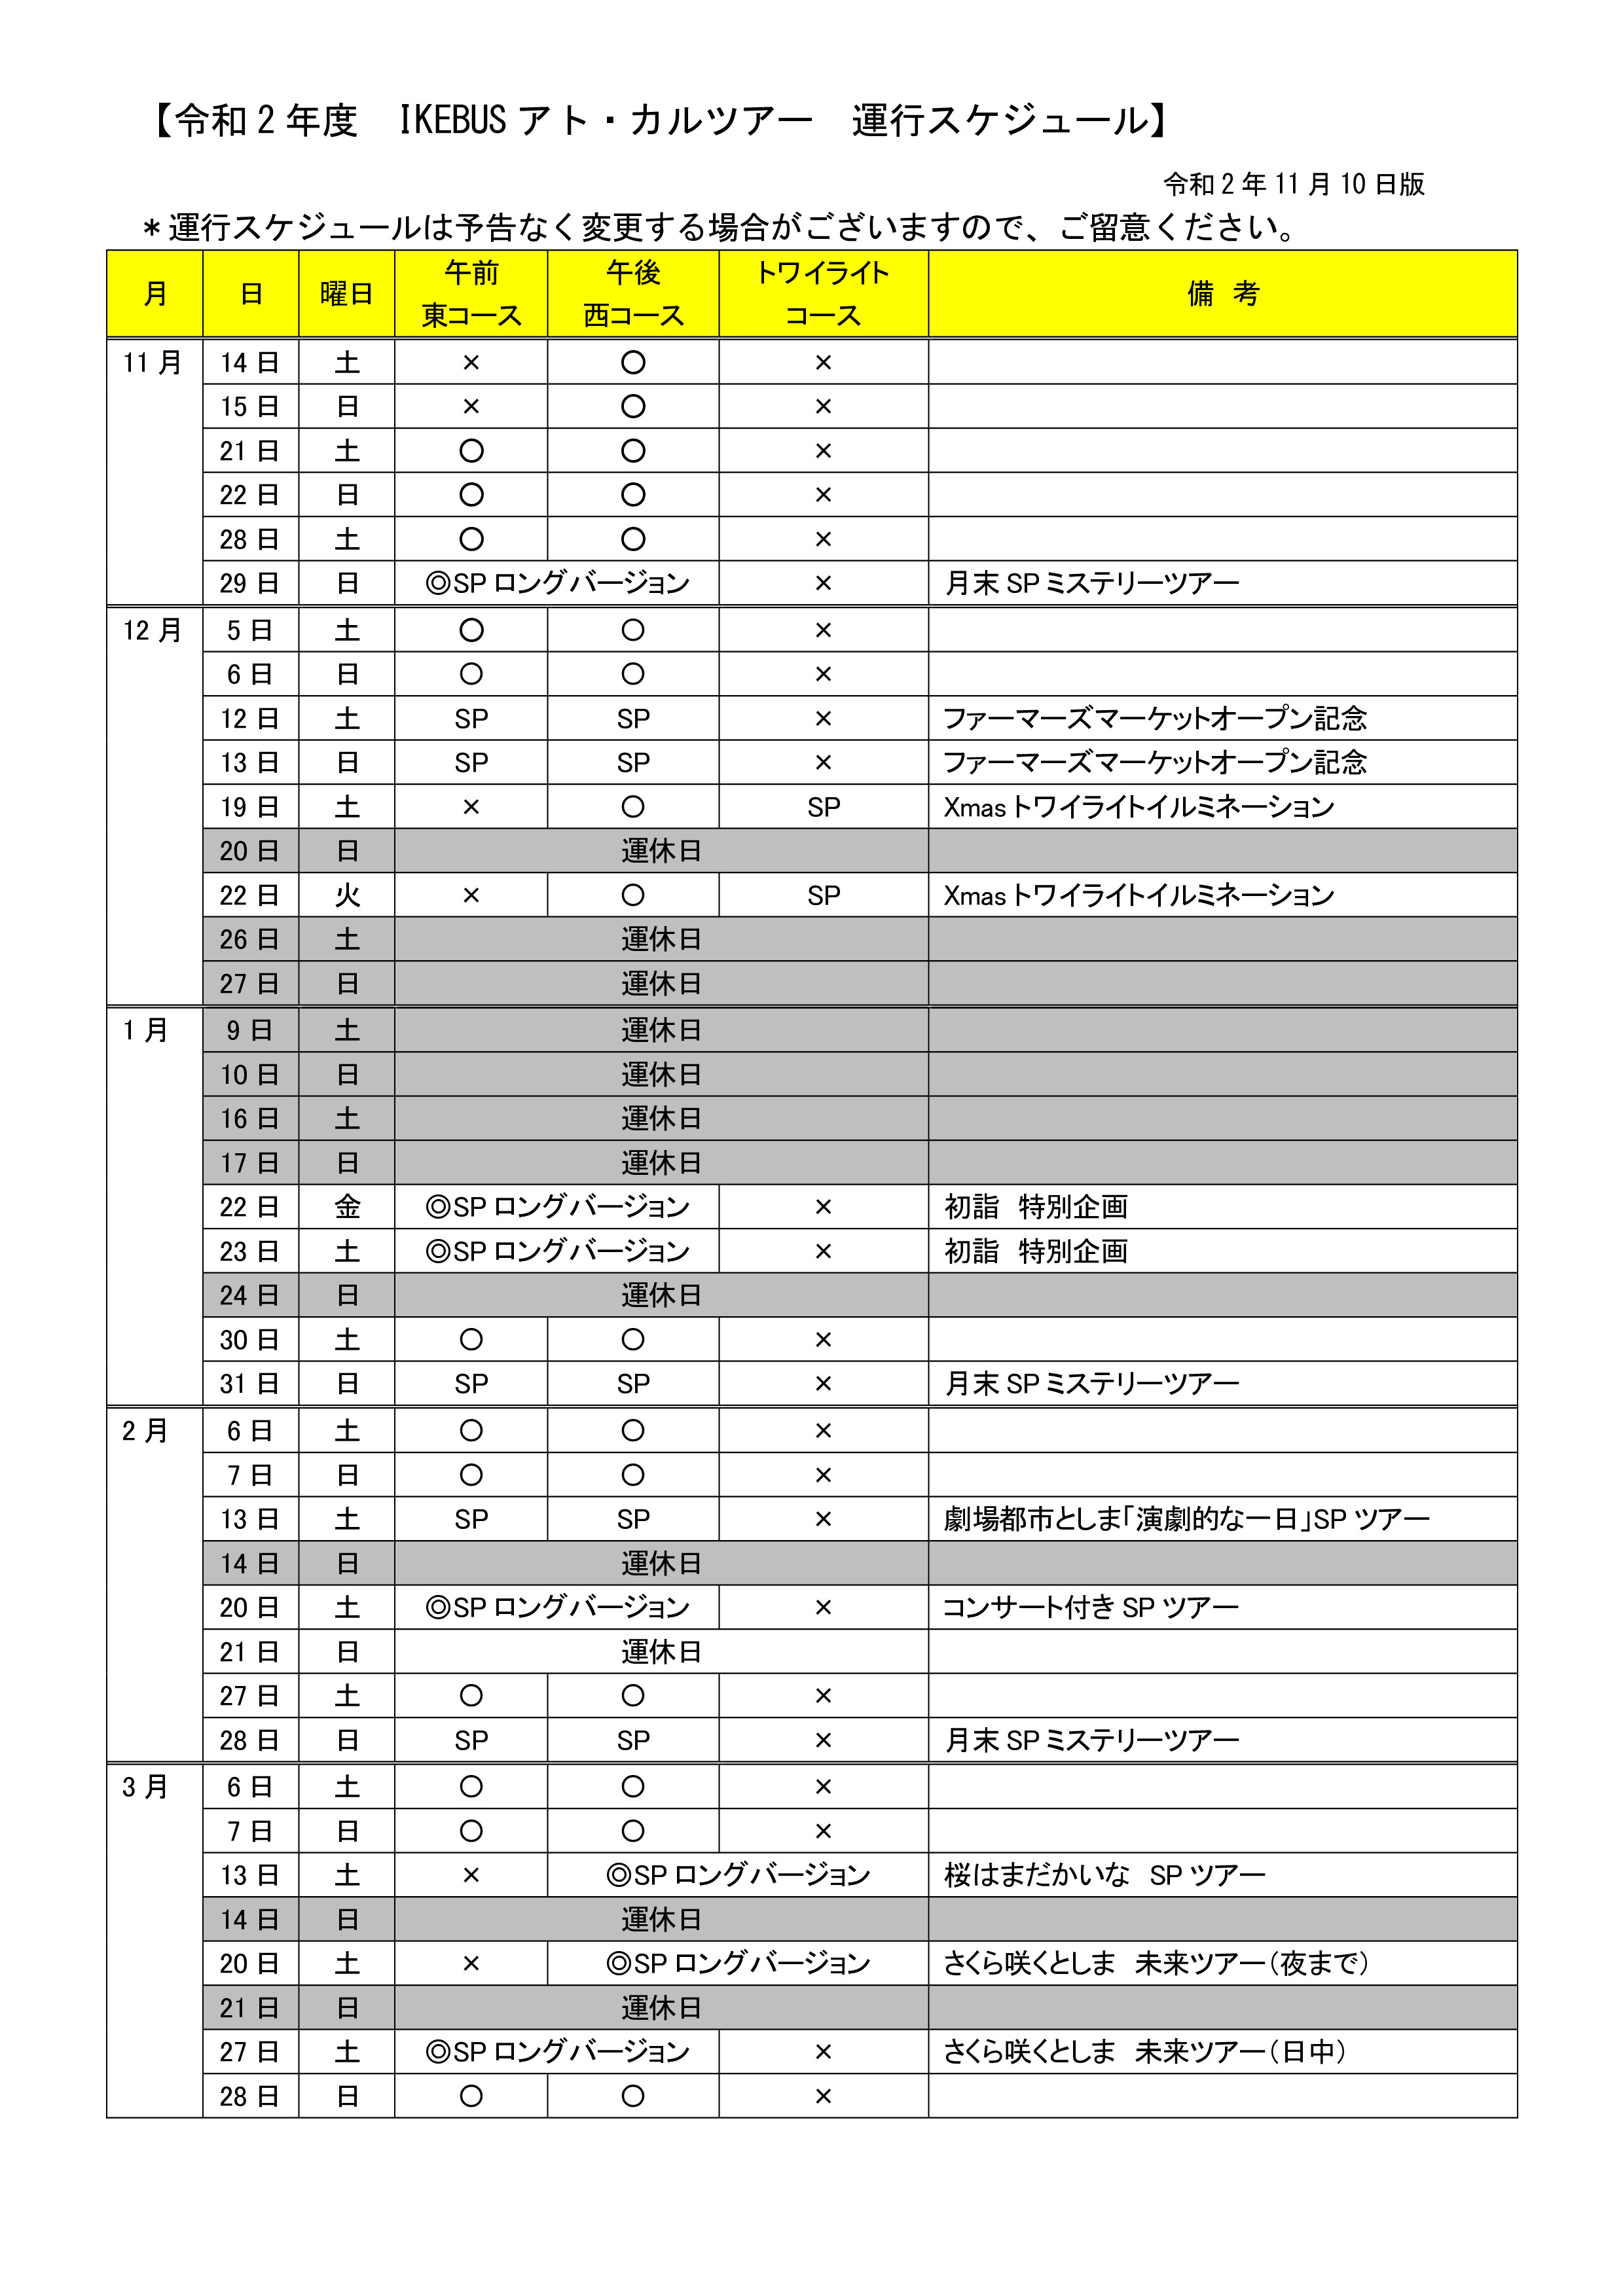 Reiwa 2nd year IKEBUS at Cal Tour operation schedule